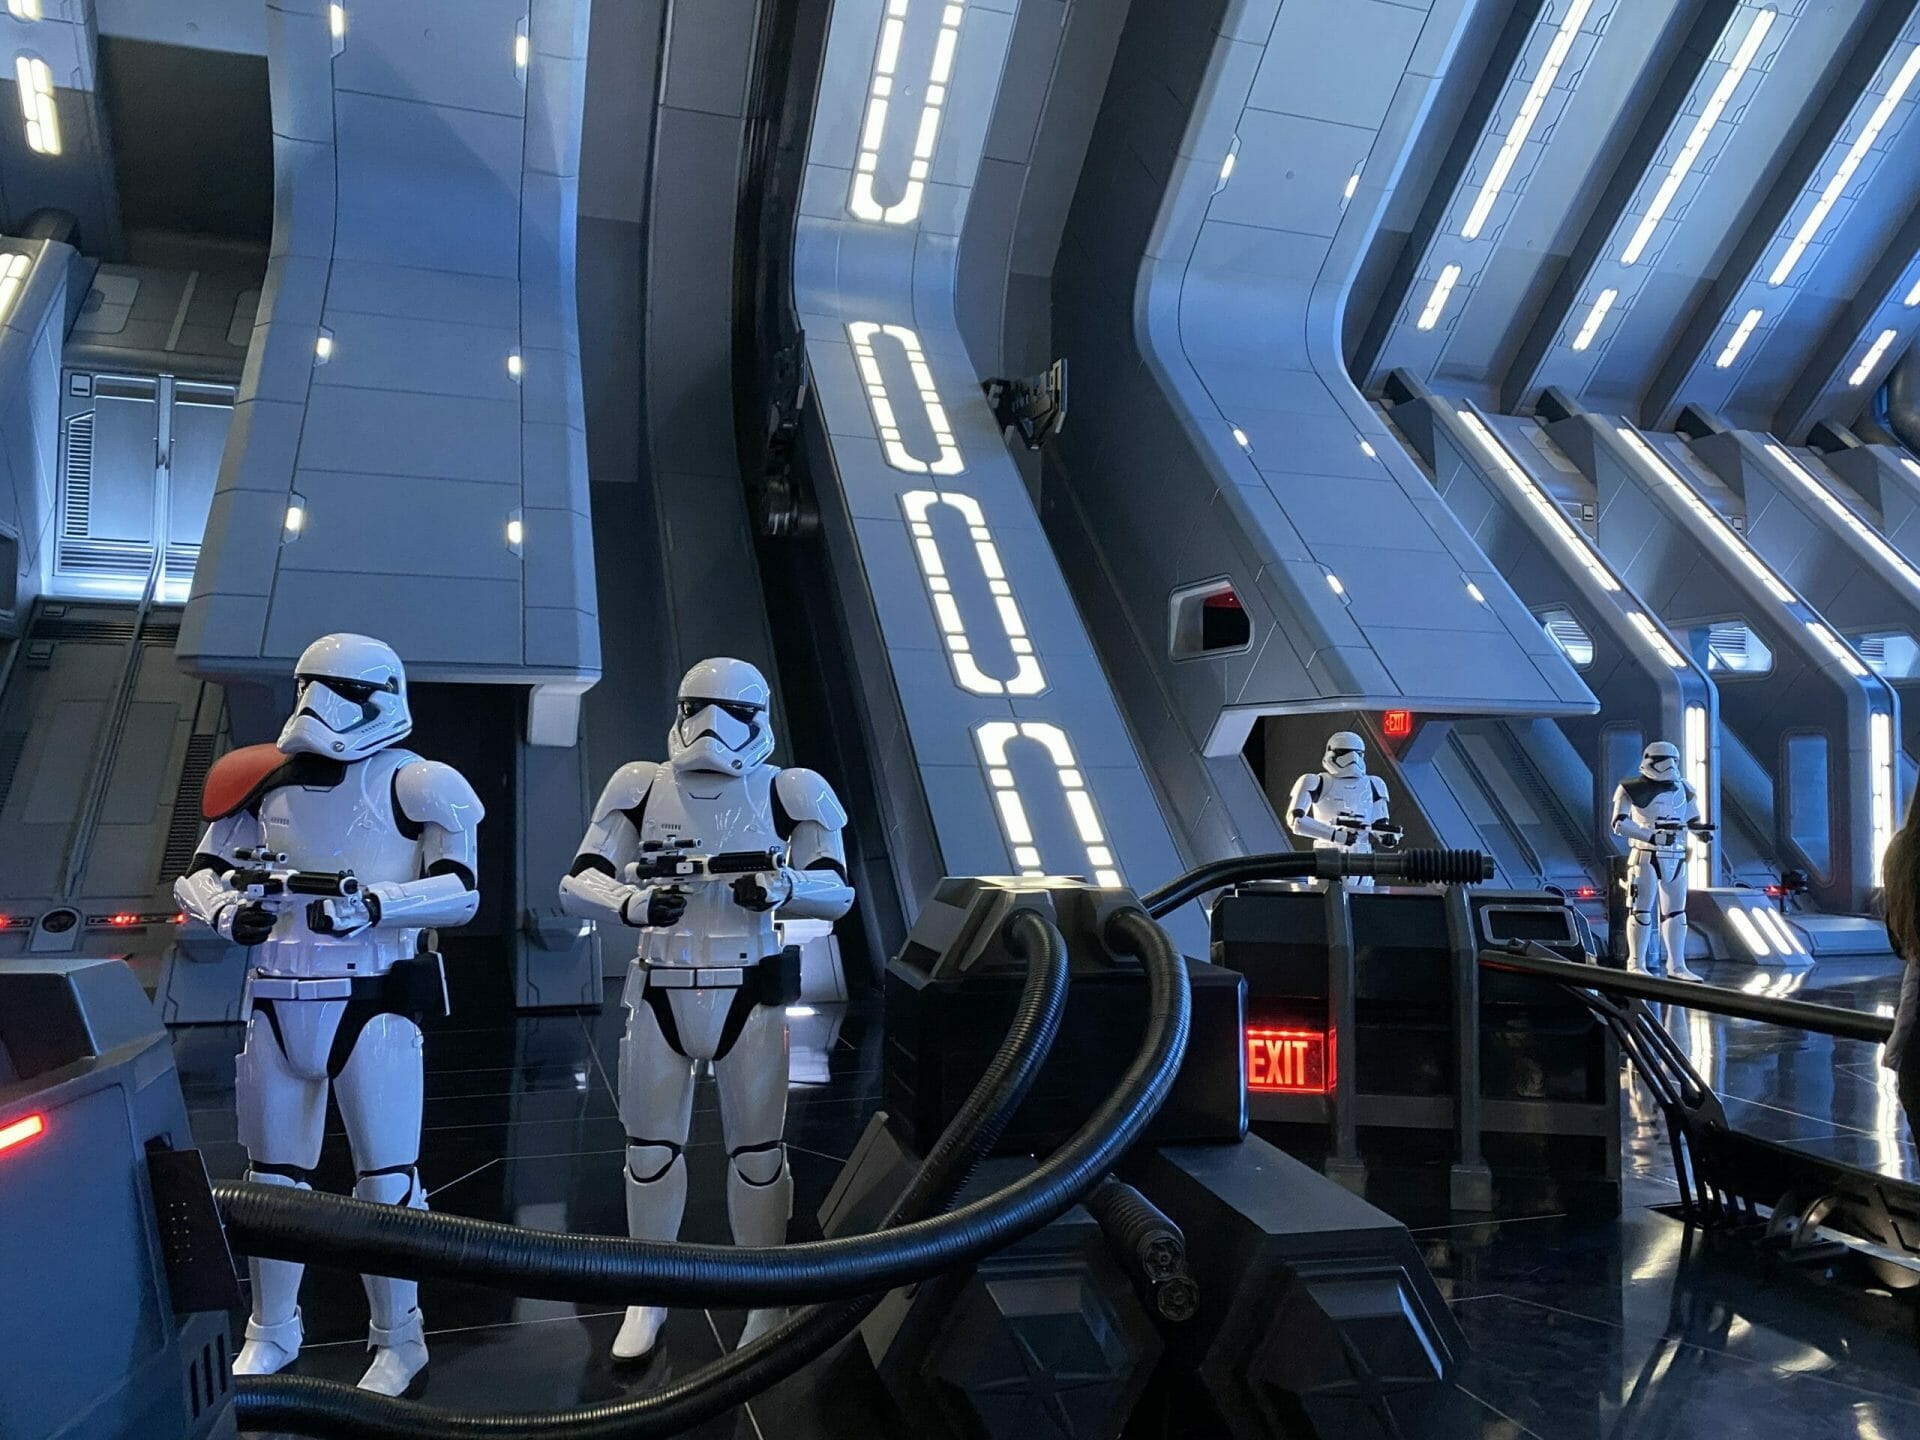 Disneyland Virtual Boarding Group Queue Announced for Star Wars: Rise of the Resistance